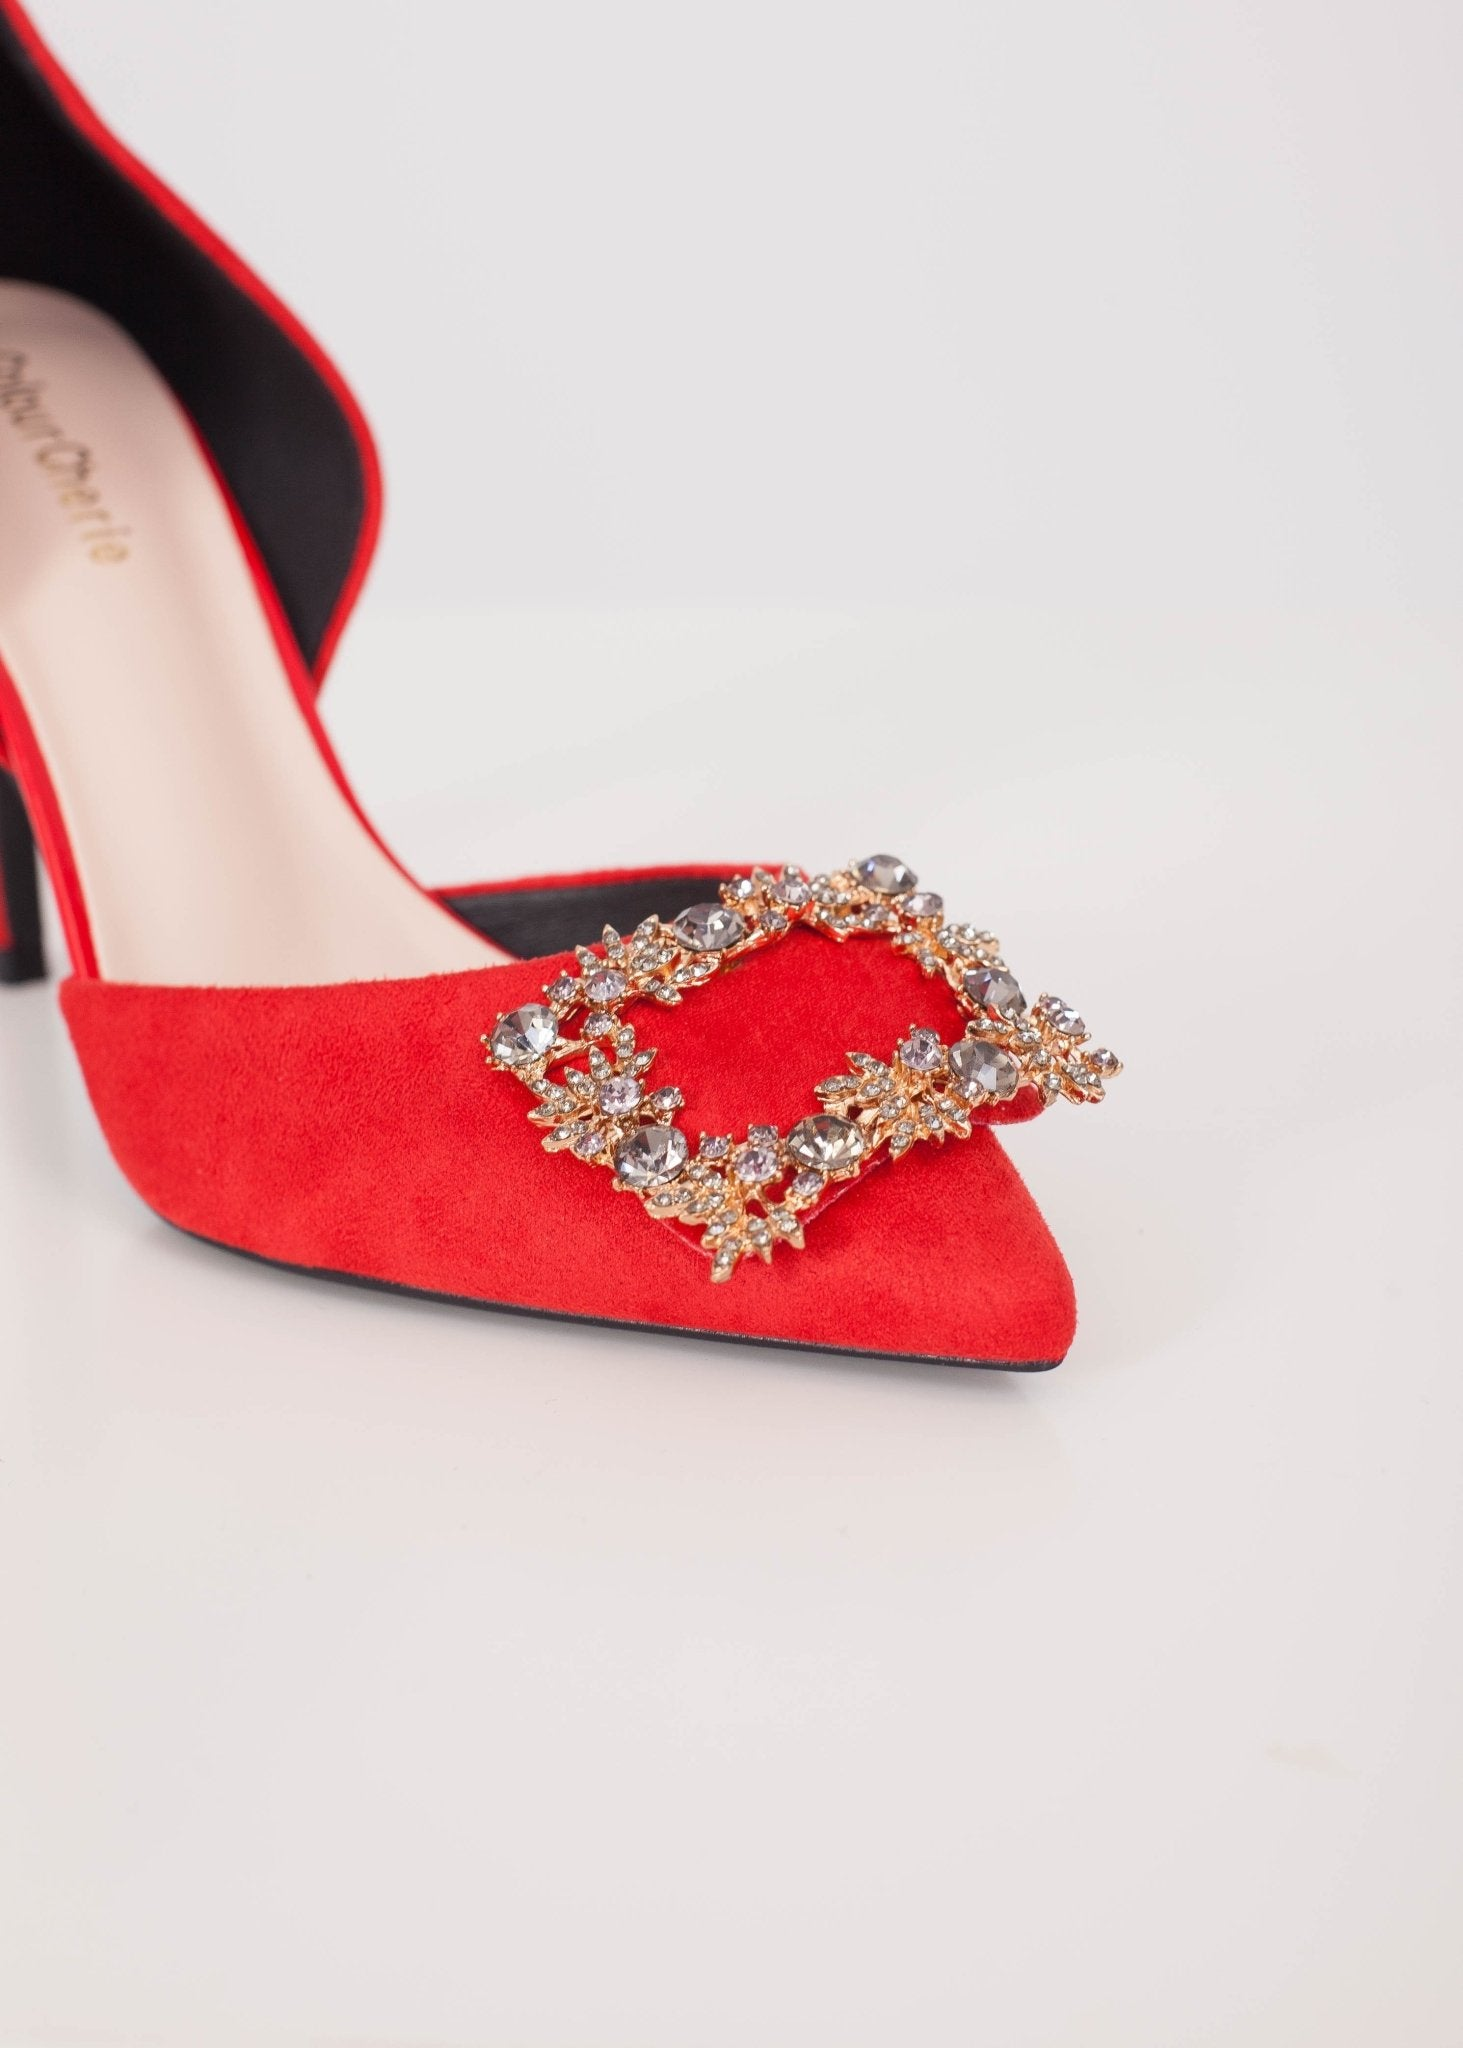 Priya Red Buckle Heel - The Walk in Wardrobe